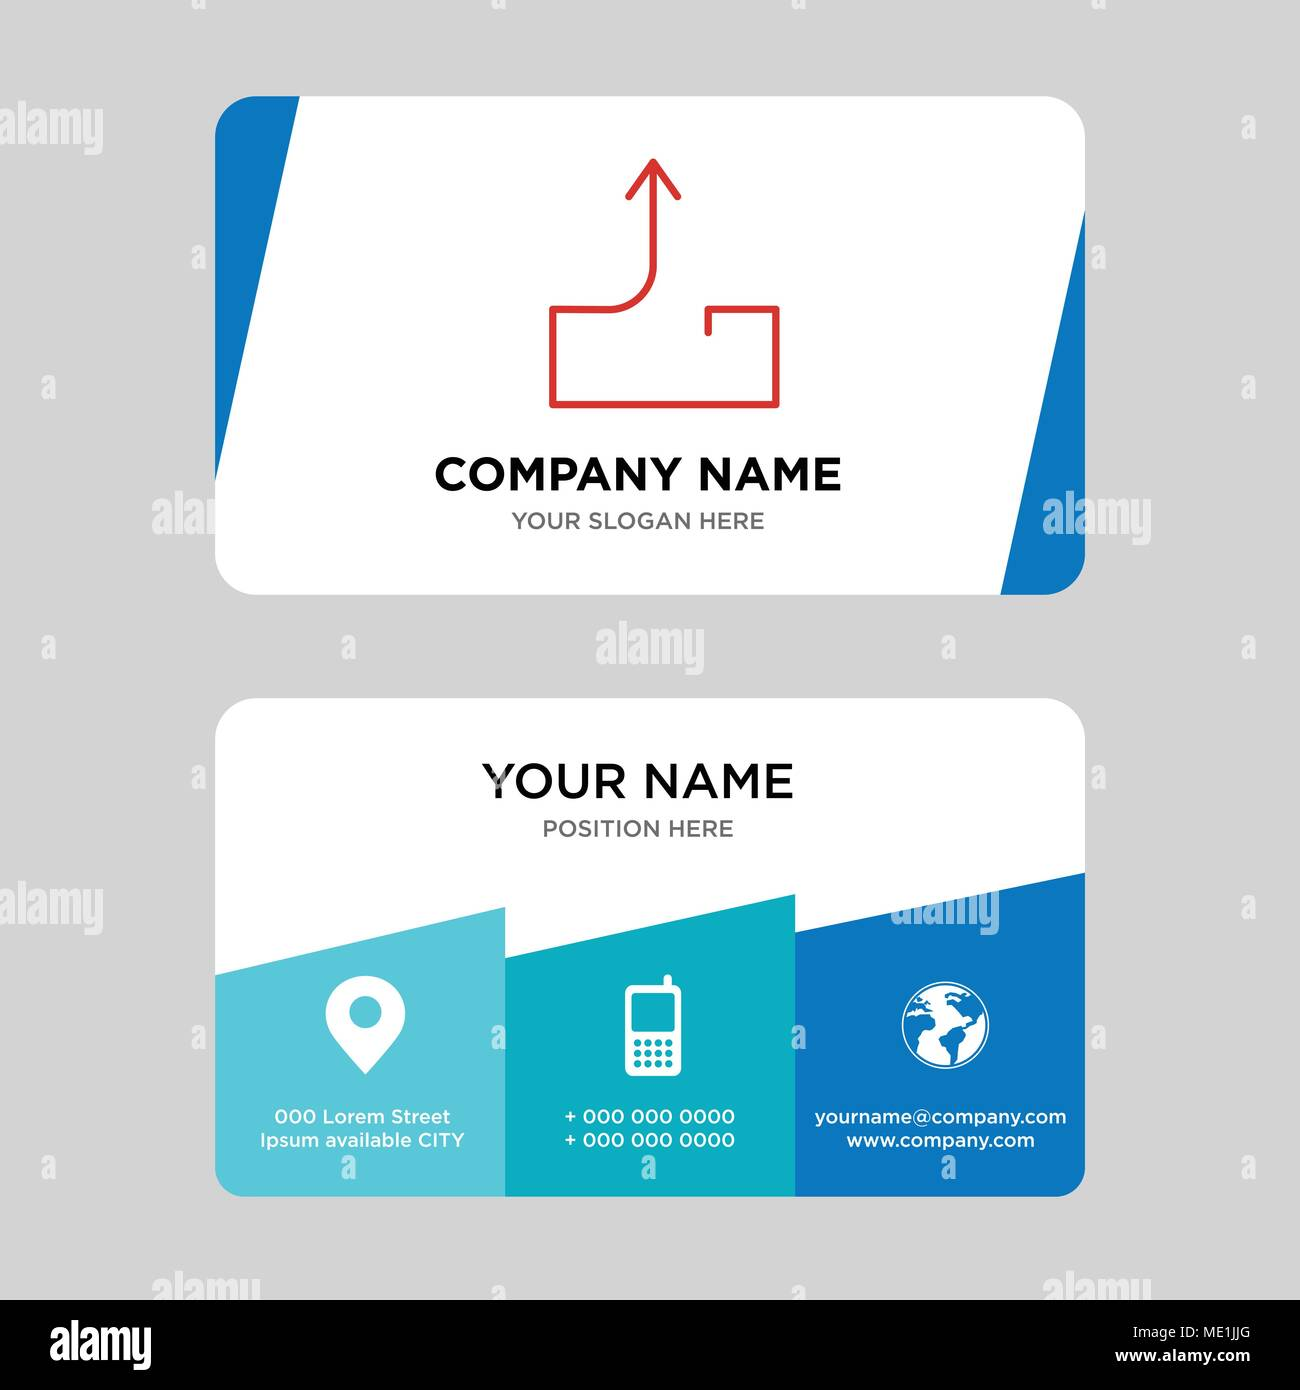 Outbox send mail business card design template, Visiting for your company, Modern Creative and Clean identity Card Vector Illustration - Stock Image